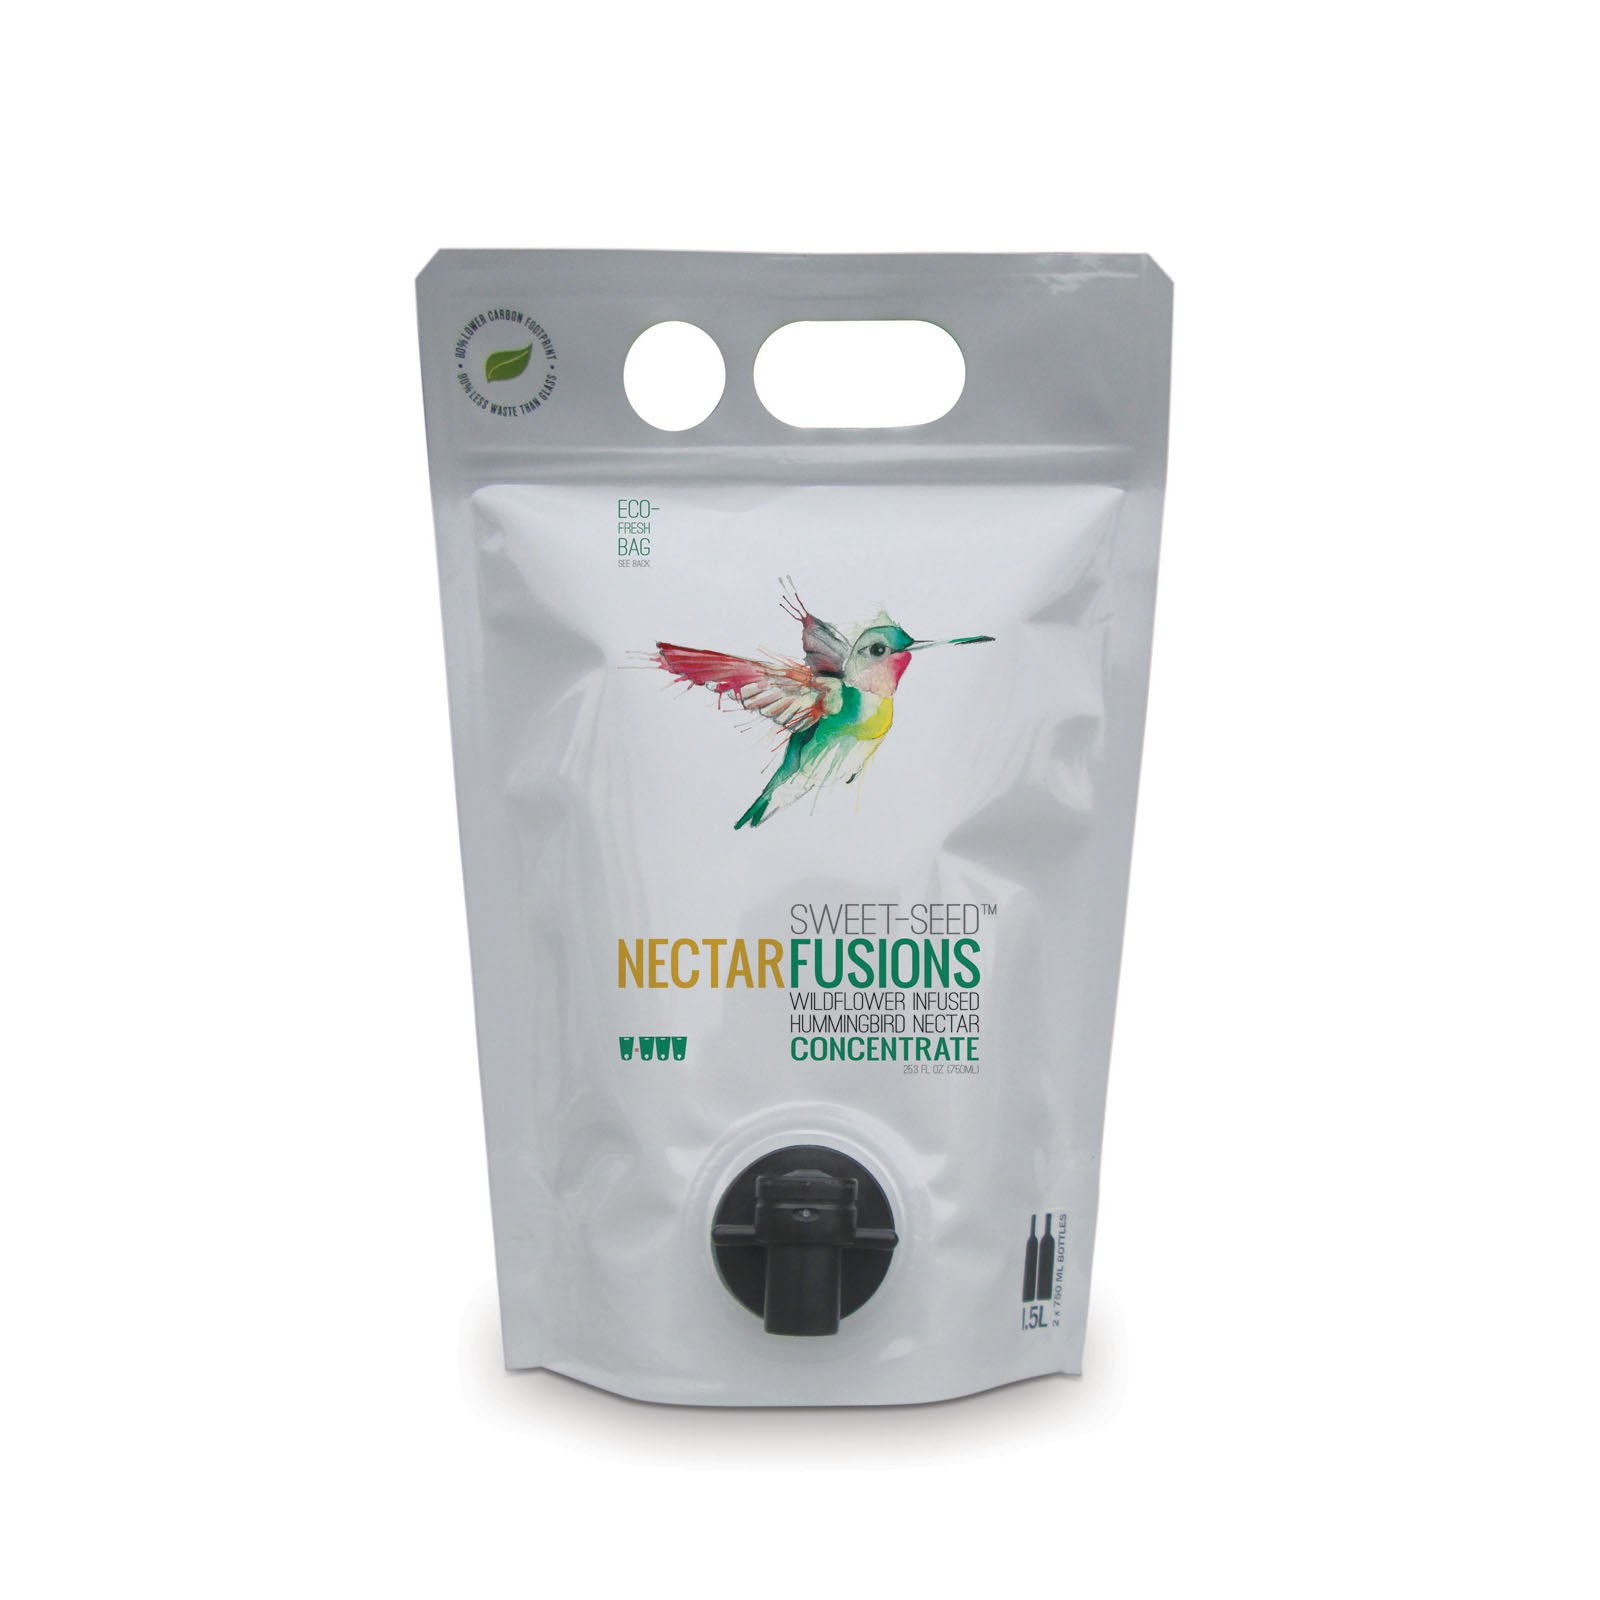 Nectar Fusions Hummingbird Food: [9-pack] All-natural & Dye Free, Wildflower Infused Hummingbird Nectar Concentrate (450 oz./Makes 1350 oz.)